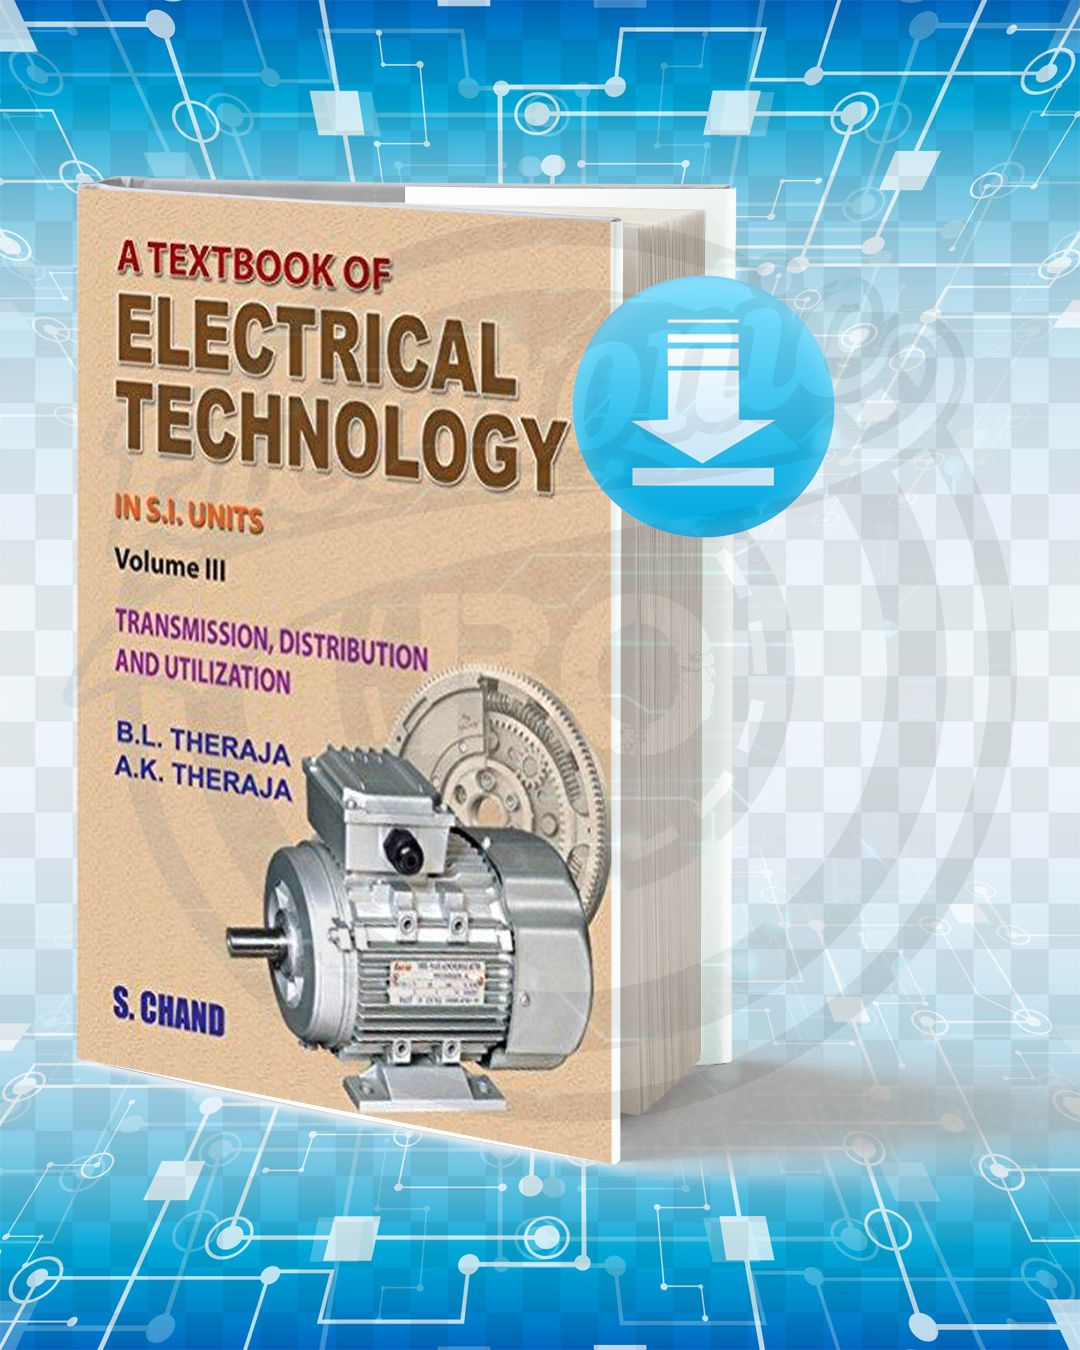 Download A Textbook Of Electrical Technology Electrical Engineering Books Textbook Electricity